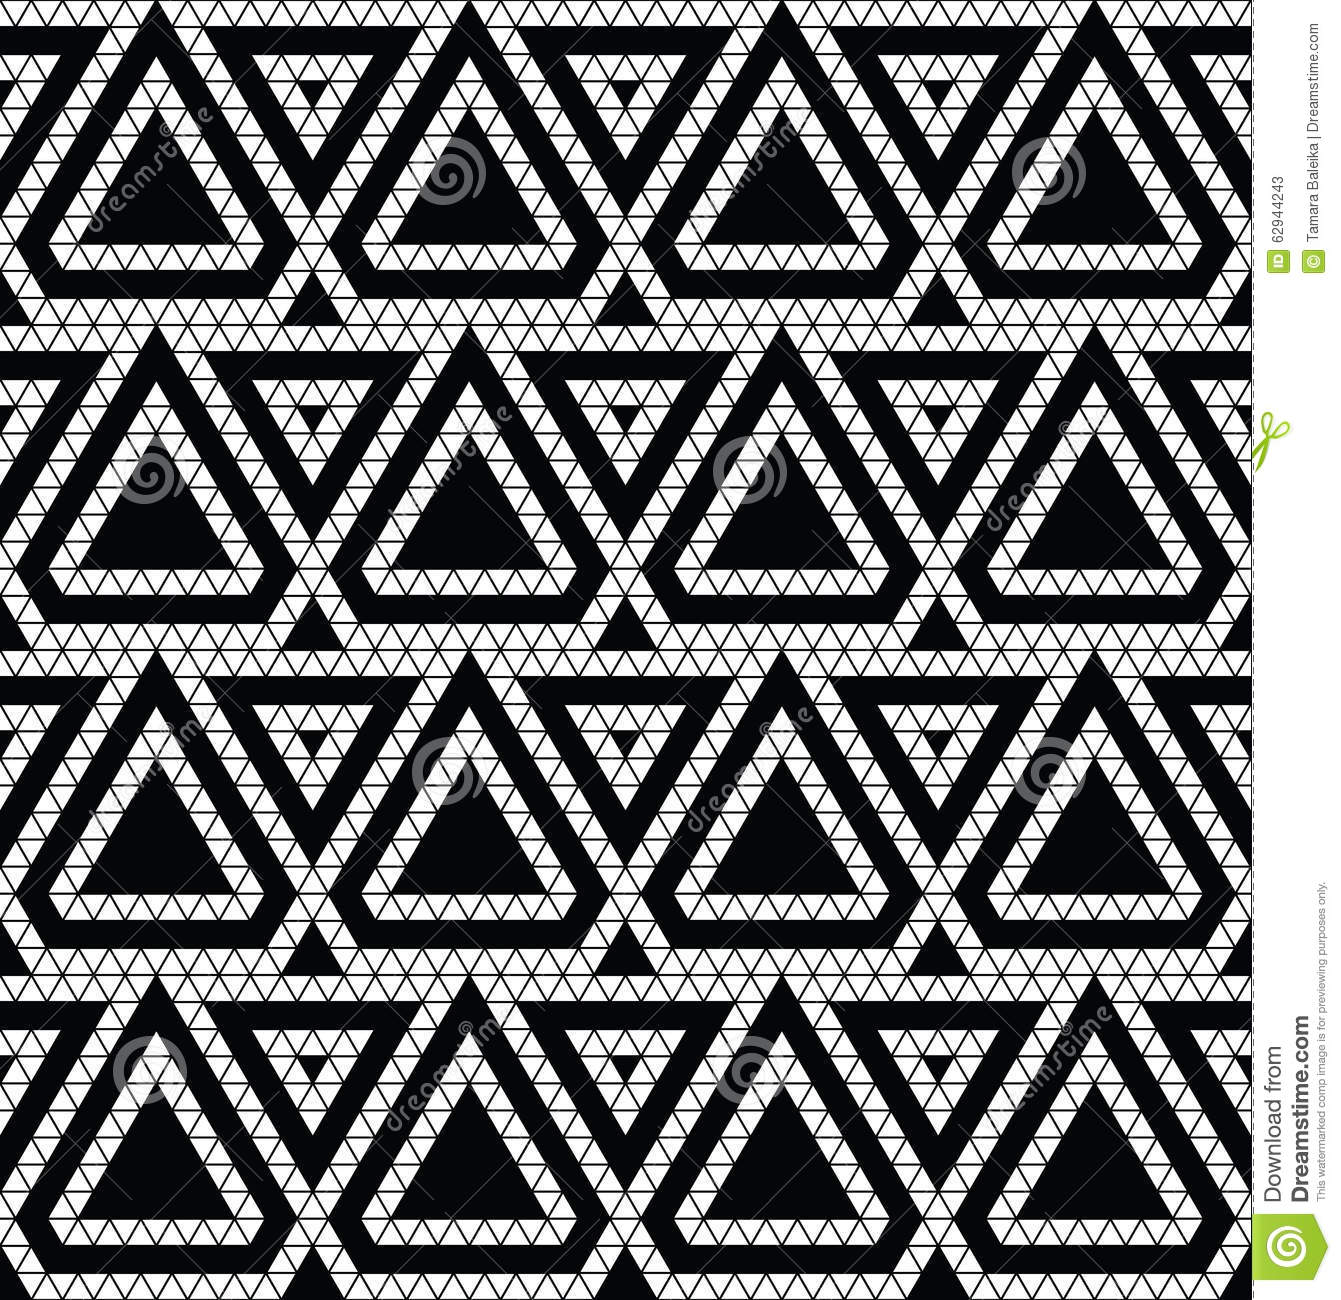 Tribal Monochrome Lace Stock Illustration Image 62944243